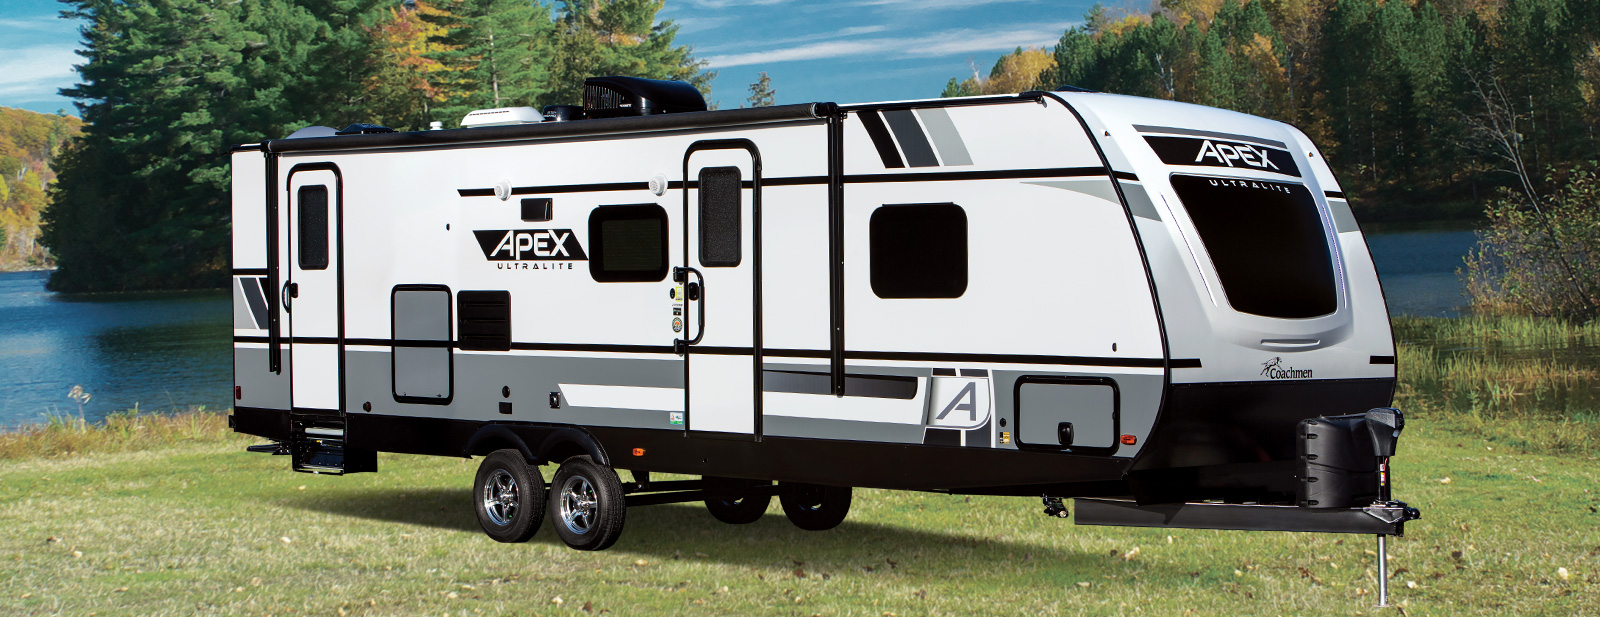 Travel Trailers Near Me >> Apex Ultra Lite Travel Trailers By Coachmen Rv